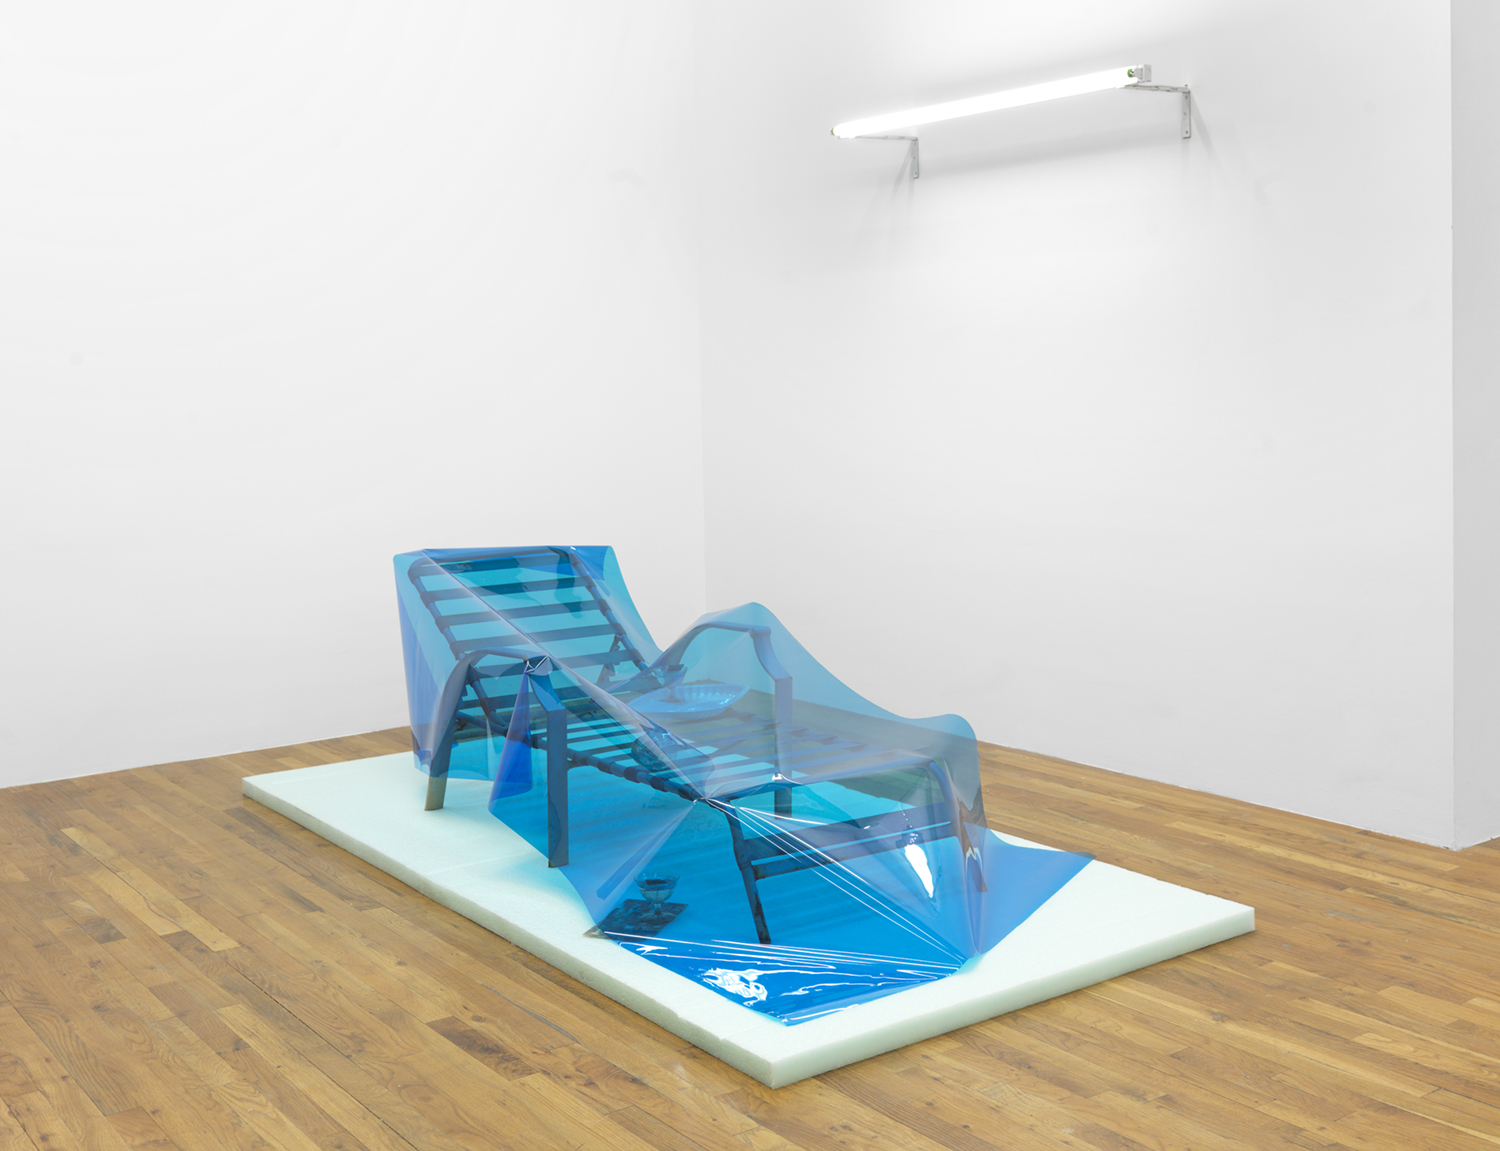 Condo Glut  2014 Packing foam, sun lounger, fluorescent light, UV lighting gel, plastic tray, glasses Dirty martini - Red Hook water, gasoline, abalone shell 26 x 97 x 48 inches